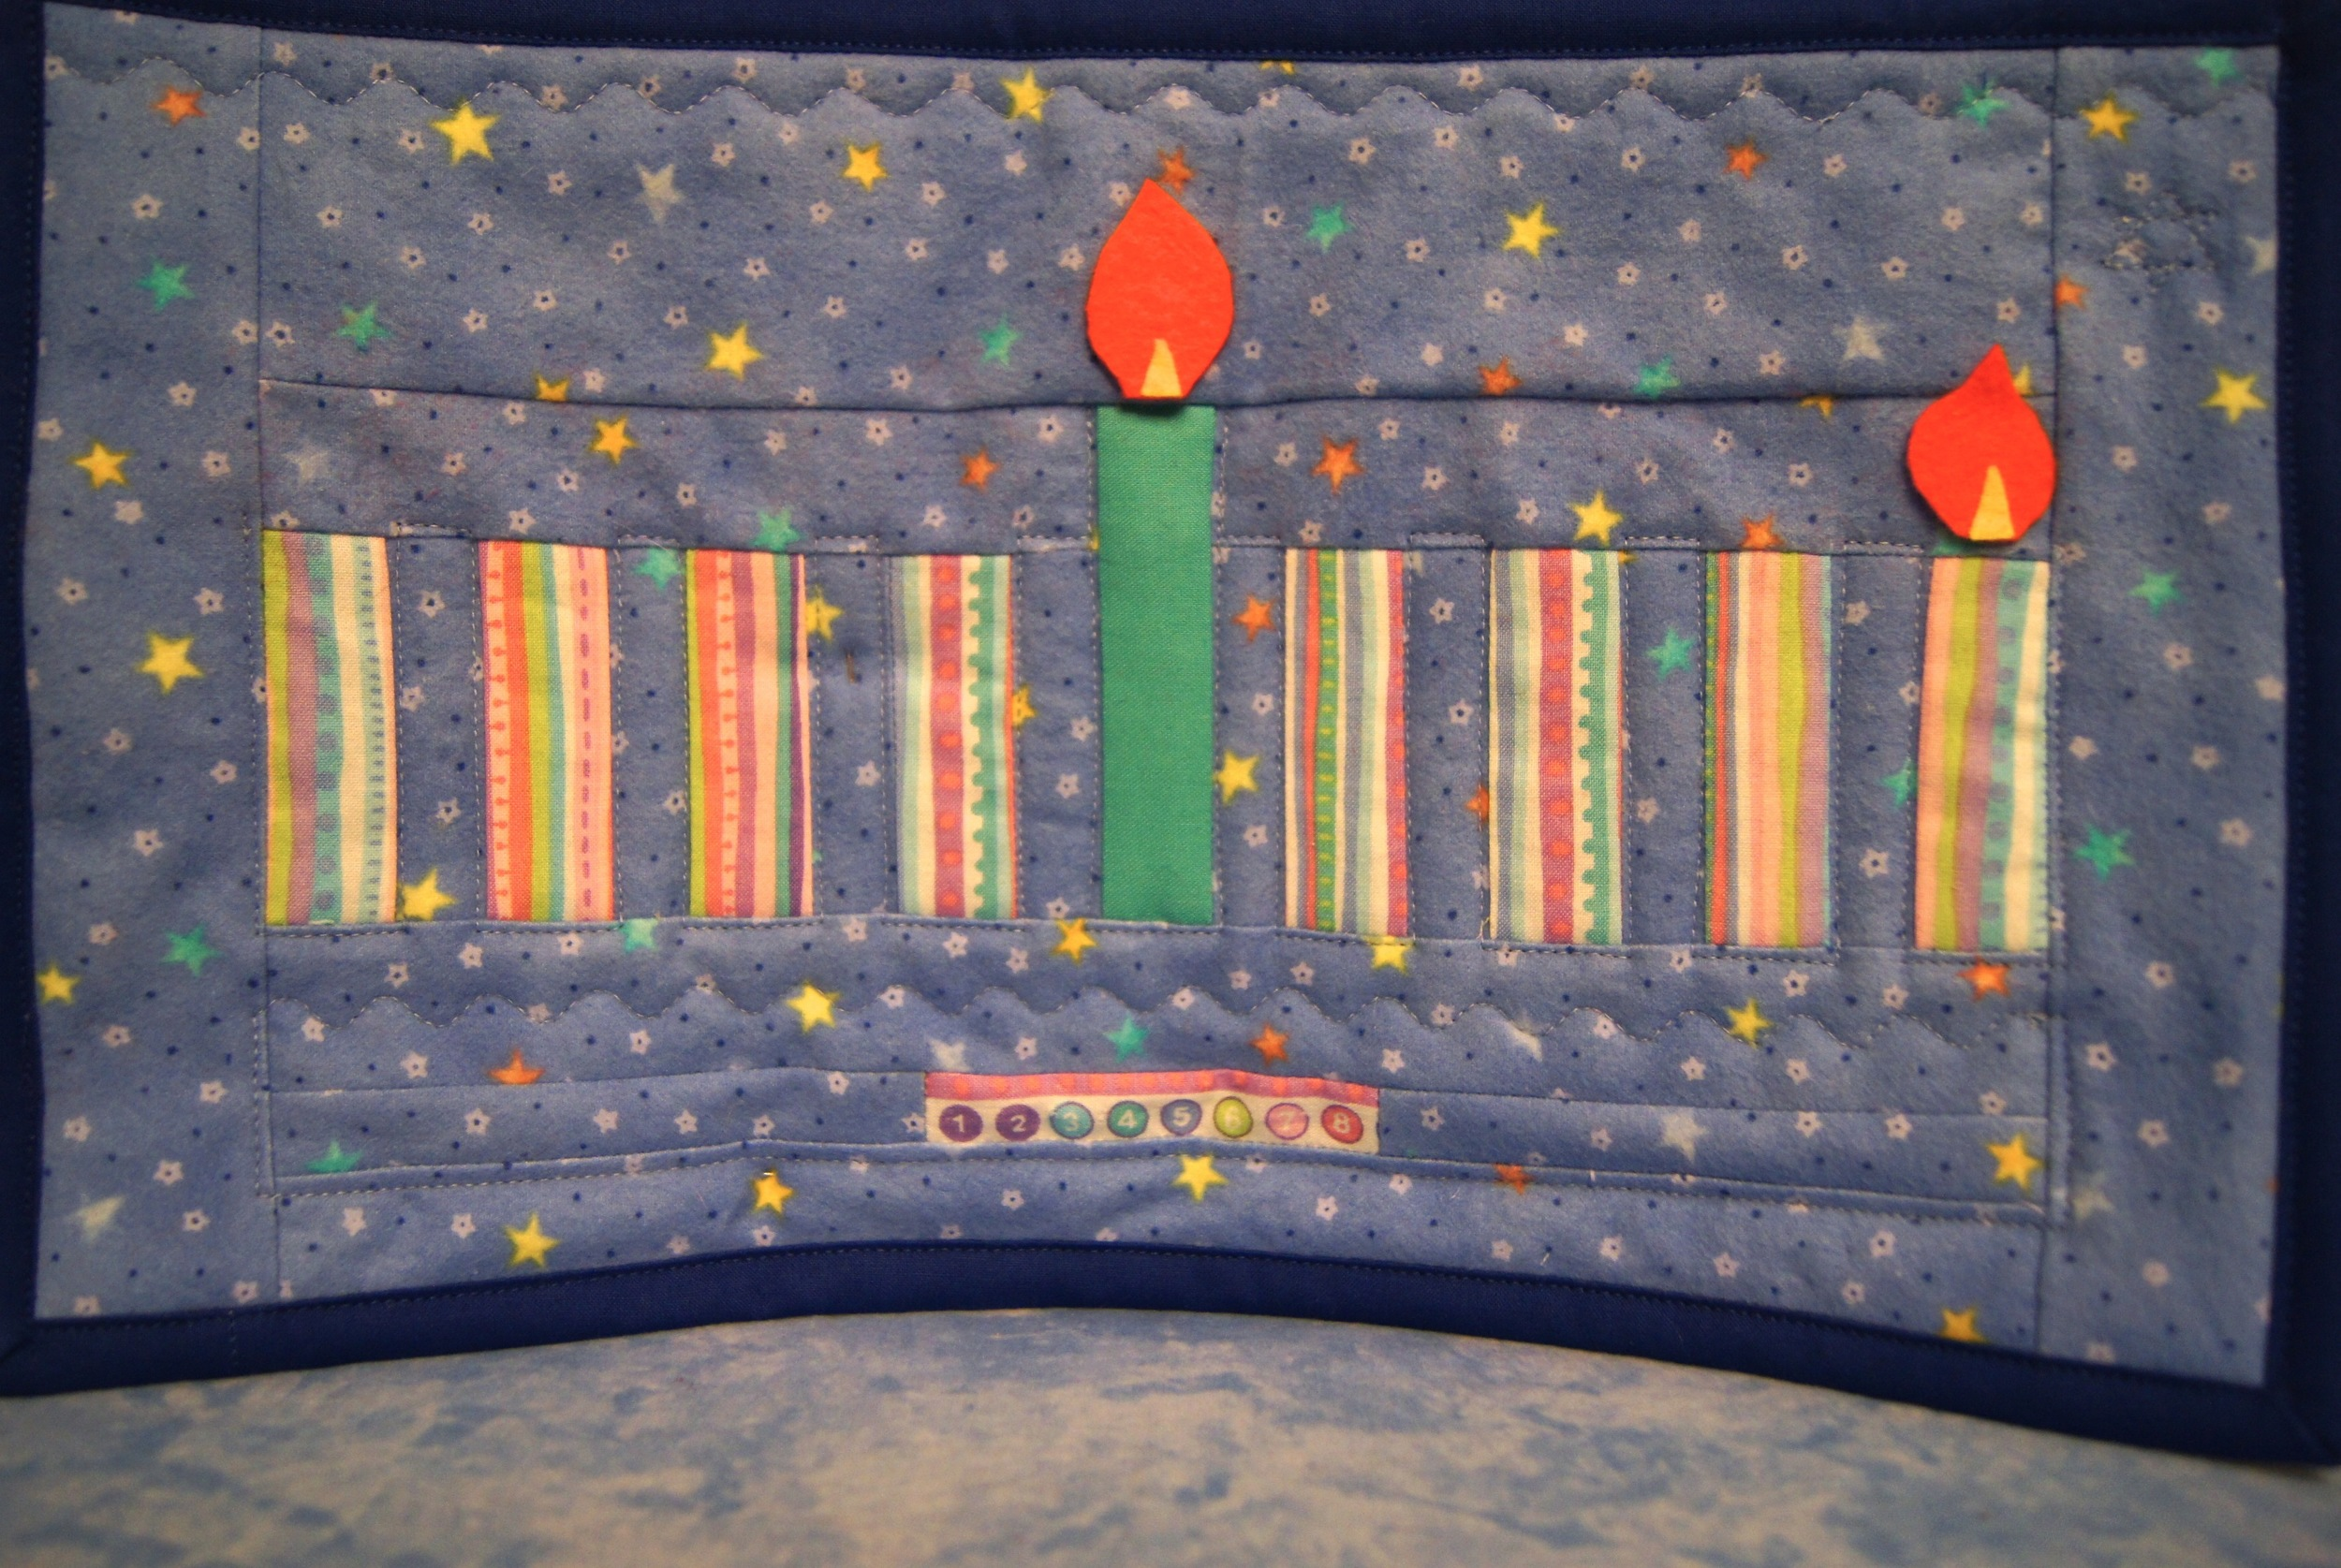 Hanukkah Mini Quilt 9 x 15 inches, quilting cotton, flannel and felt